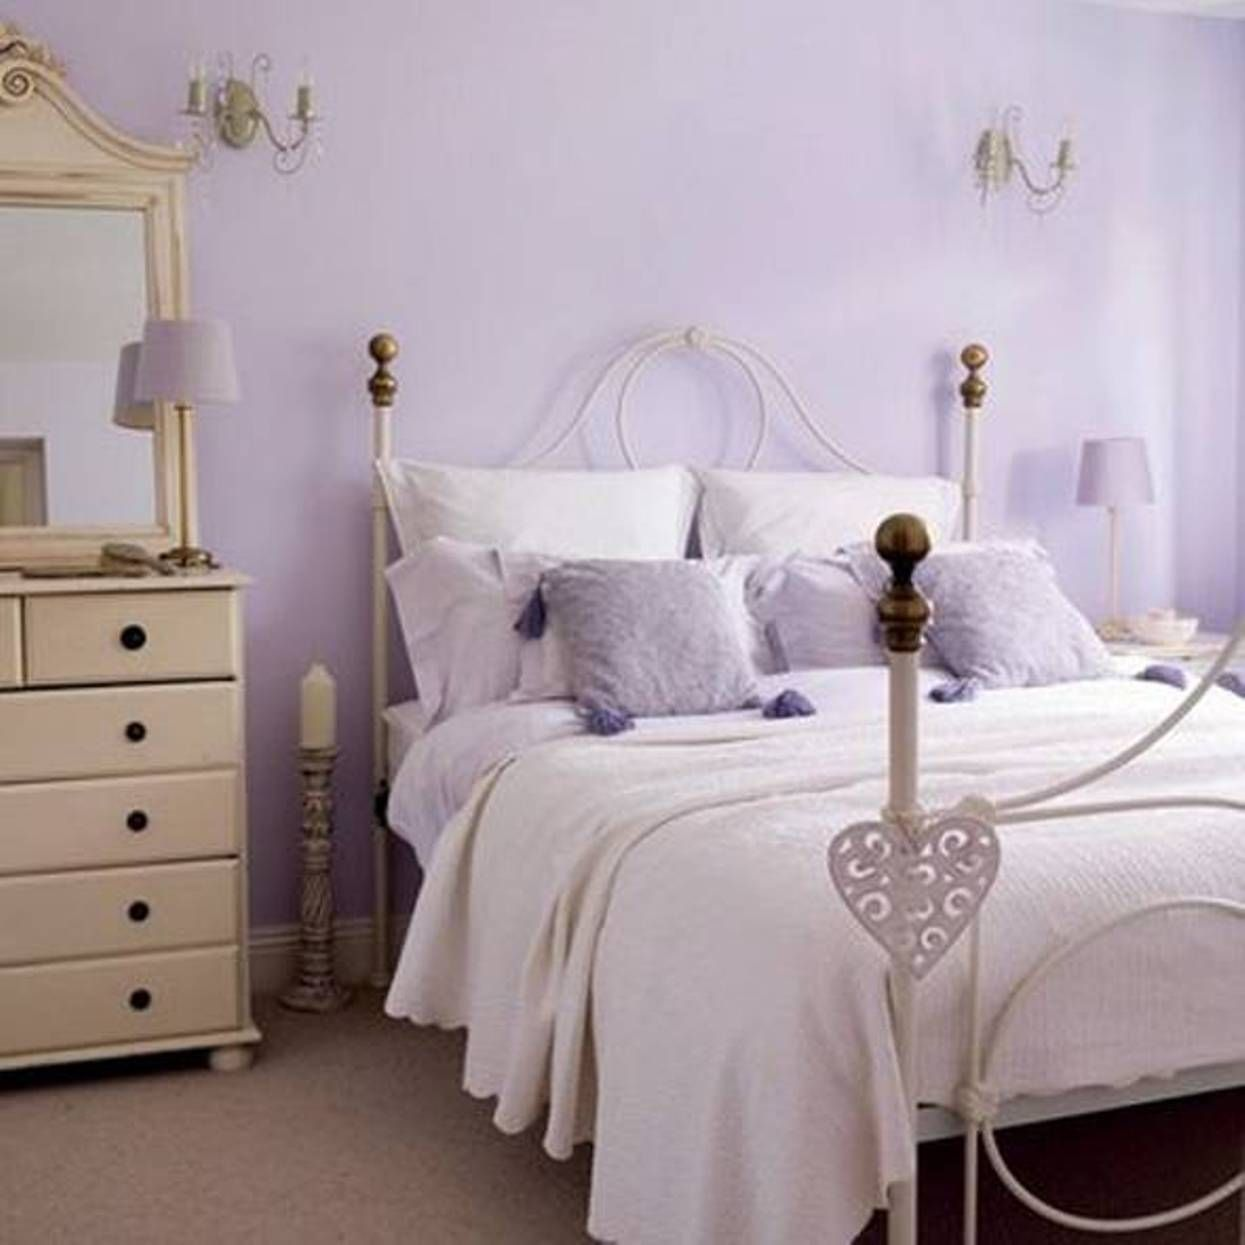 Violet bedroom color ideas - Take A Tour Of This Detached House For An Inspiring House Tour From Ideal Home Look Through This Reader S Home For Decorating Inspiration And Style Advice